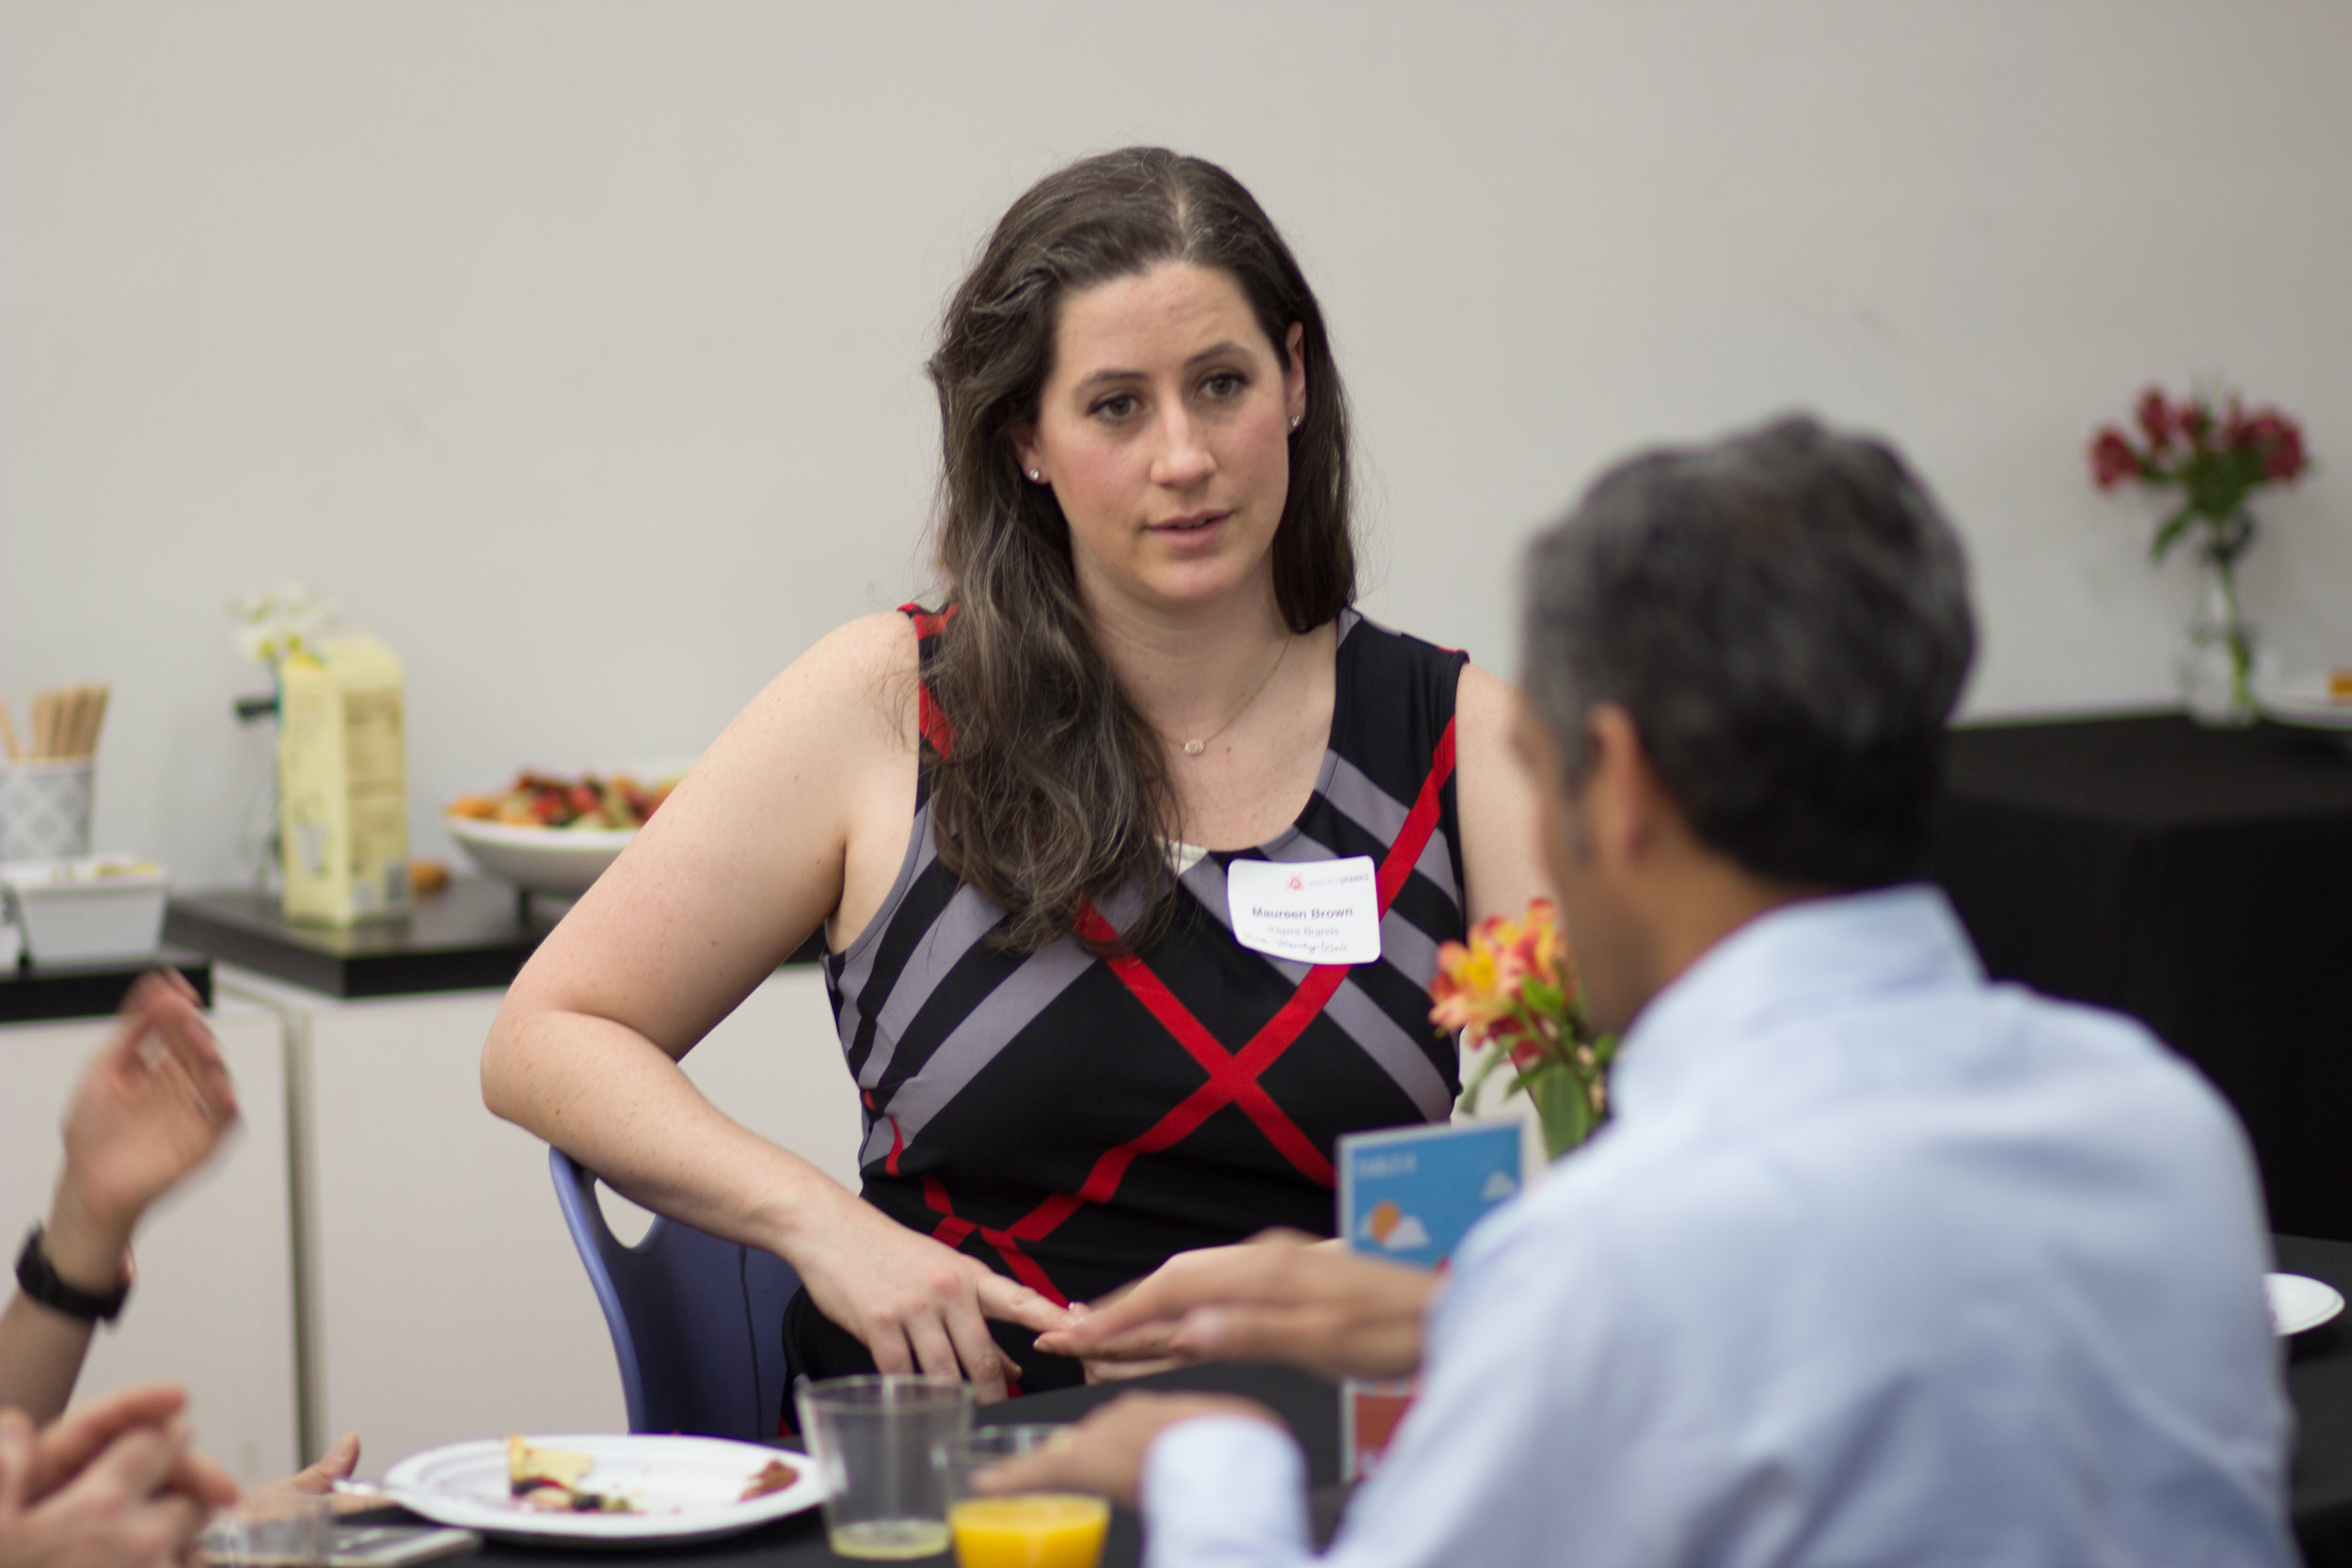 AgencySparks_#MarketersBreakfast_5.2019-0449.jpg